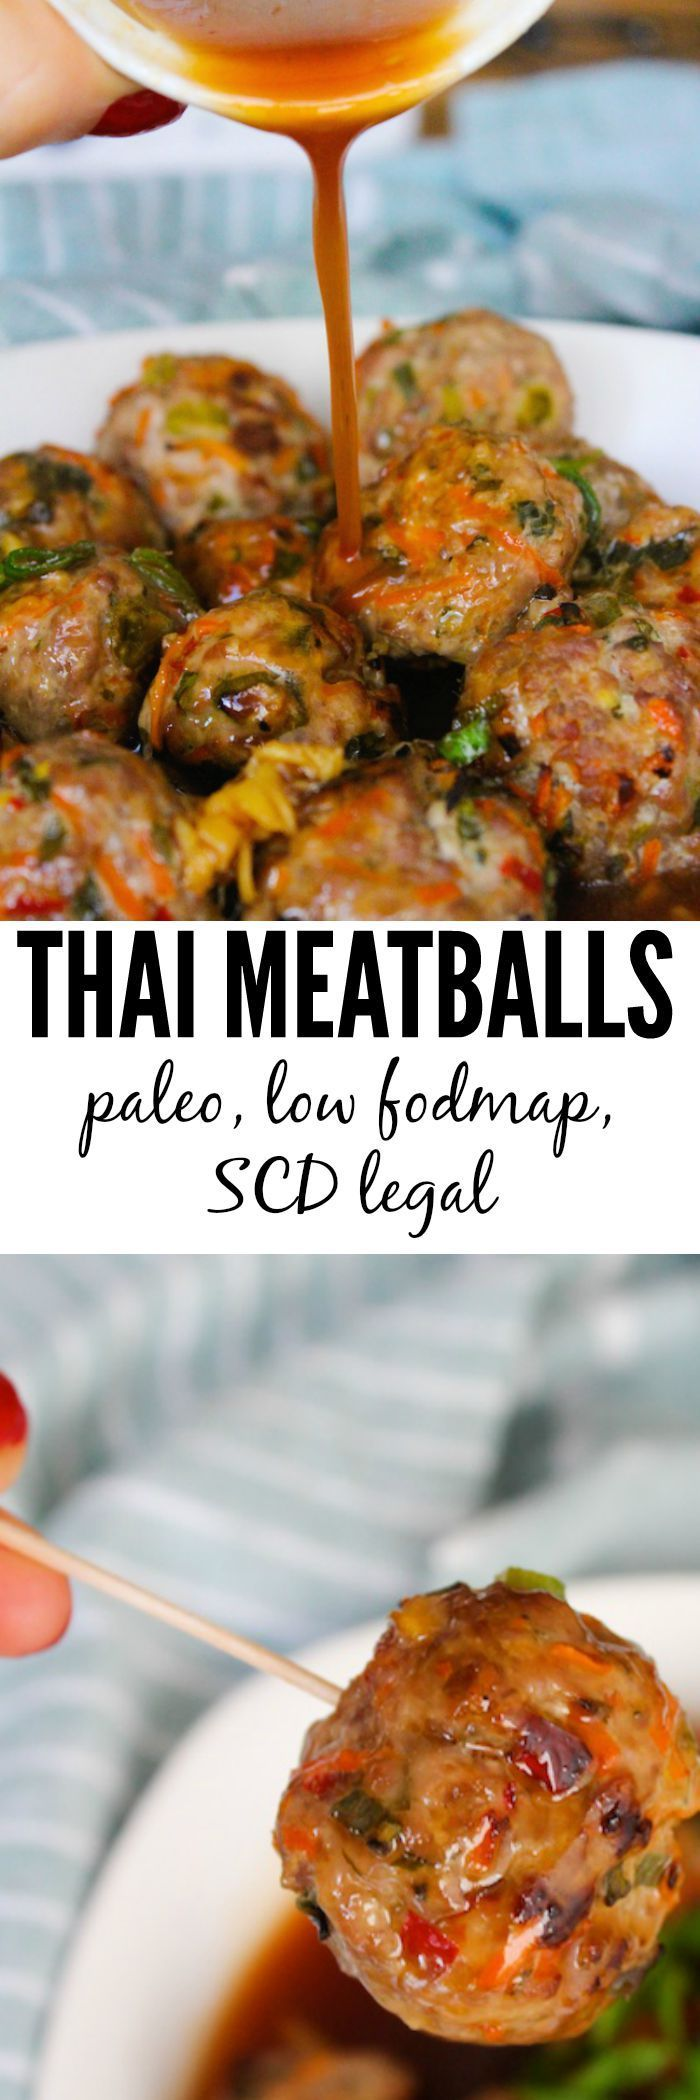 Paleo, Low FODMAP, SCD Legal Thai Meatballs www.asaucykitchen.com omit non-AIP spices http://www.asaucykitchen.comthai-meatballs-paleo-low-fodmap/?utm_content=bufferbc4ca&utm_medium=social&utm_source=pinterest.com&utm_campaign=buffer